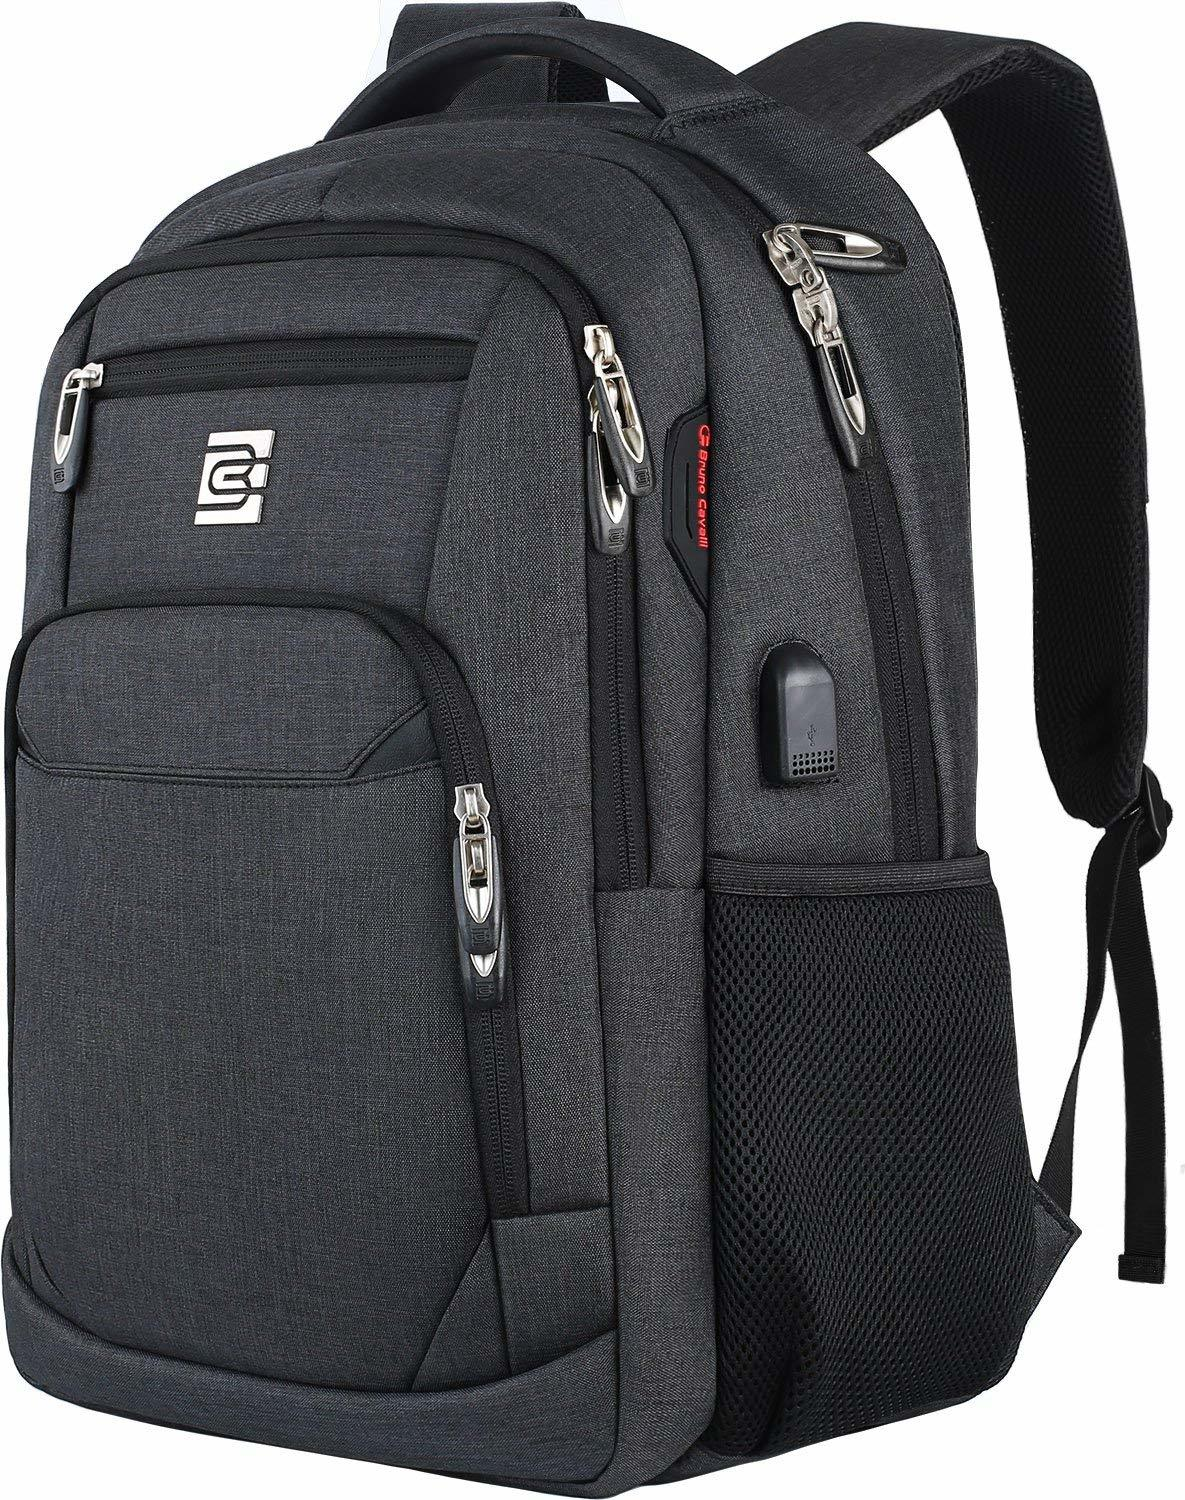 10 Backpack with a Laptop Compartment Suitable for Traveling 5